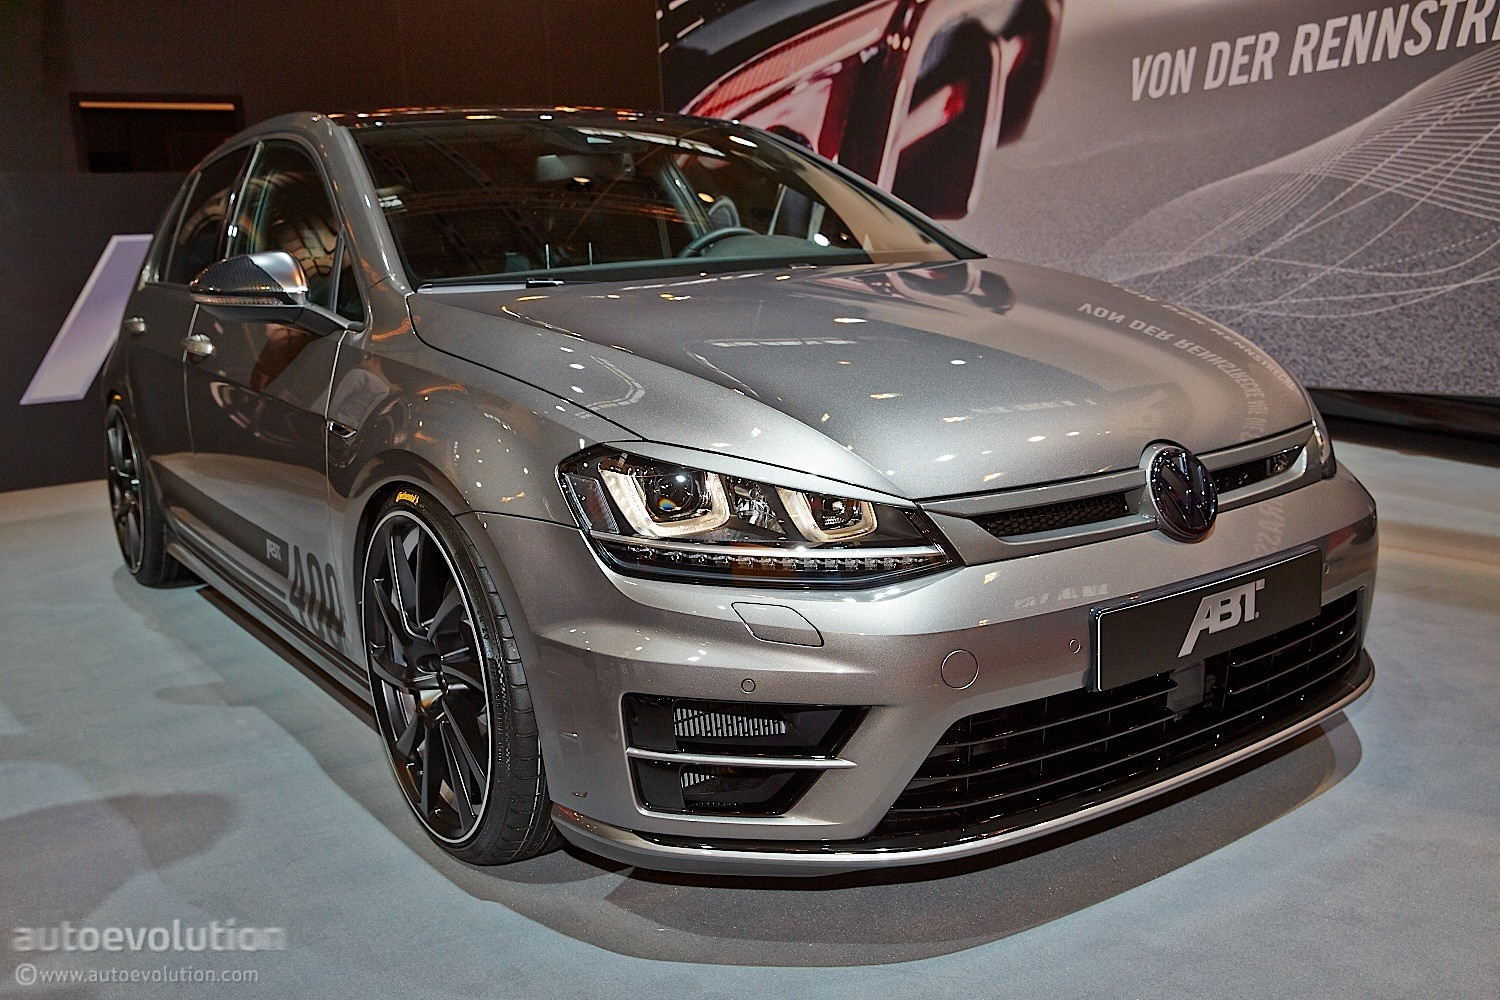 tuningcars golf r goes mental with 400 hp tuning kit from. Black Bedroom Furniture Sets. Home Design Ideas